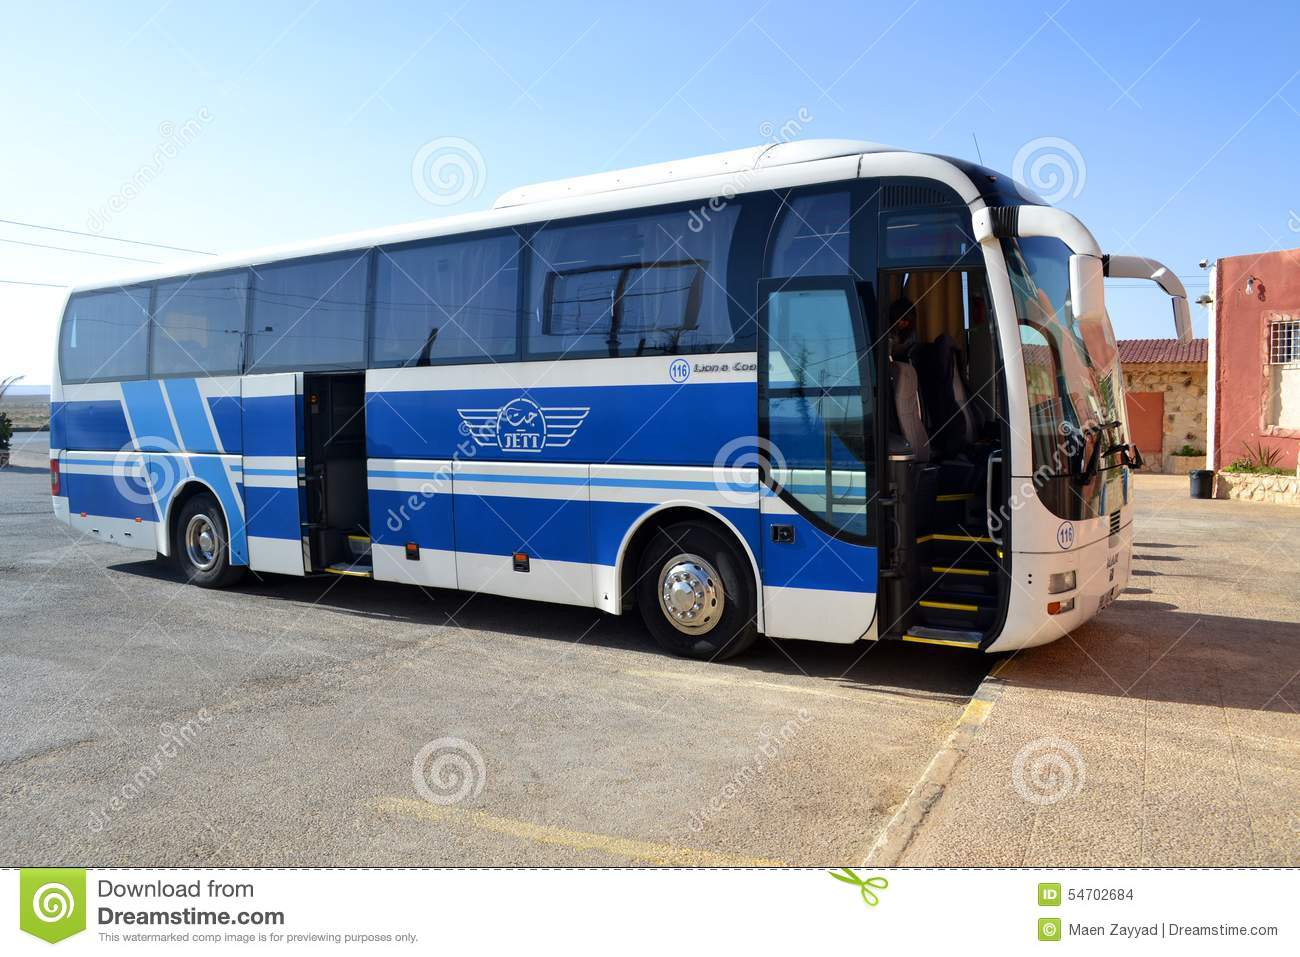 jordan express tourist transportation